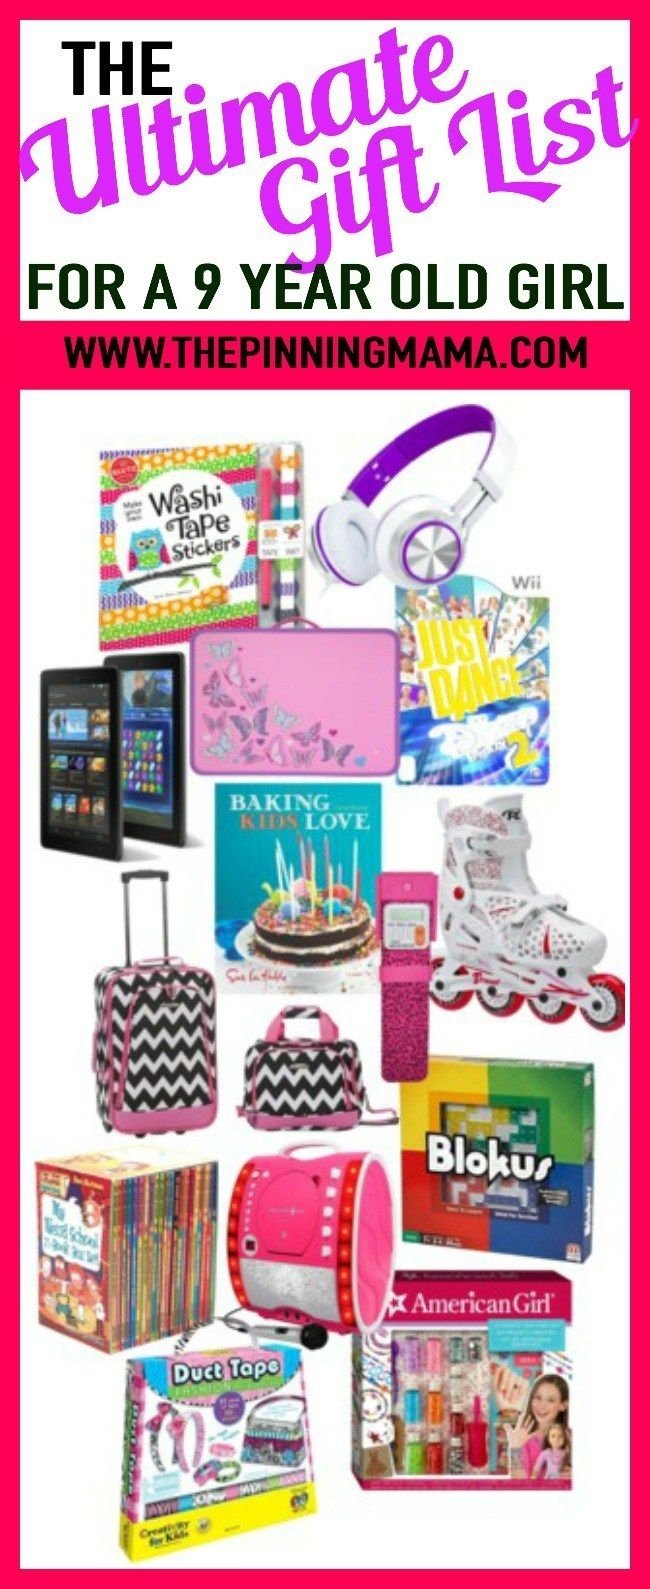 10 Fabulous 9 Year Old Gift Ideas the ultimate gift list for a 9 year old girl top toys girls age 9 14 2021